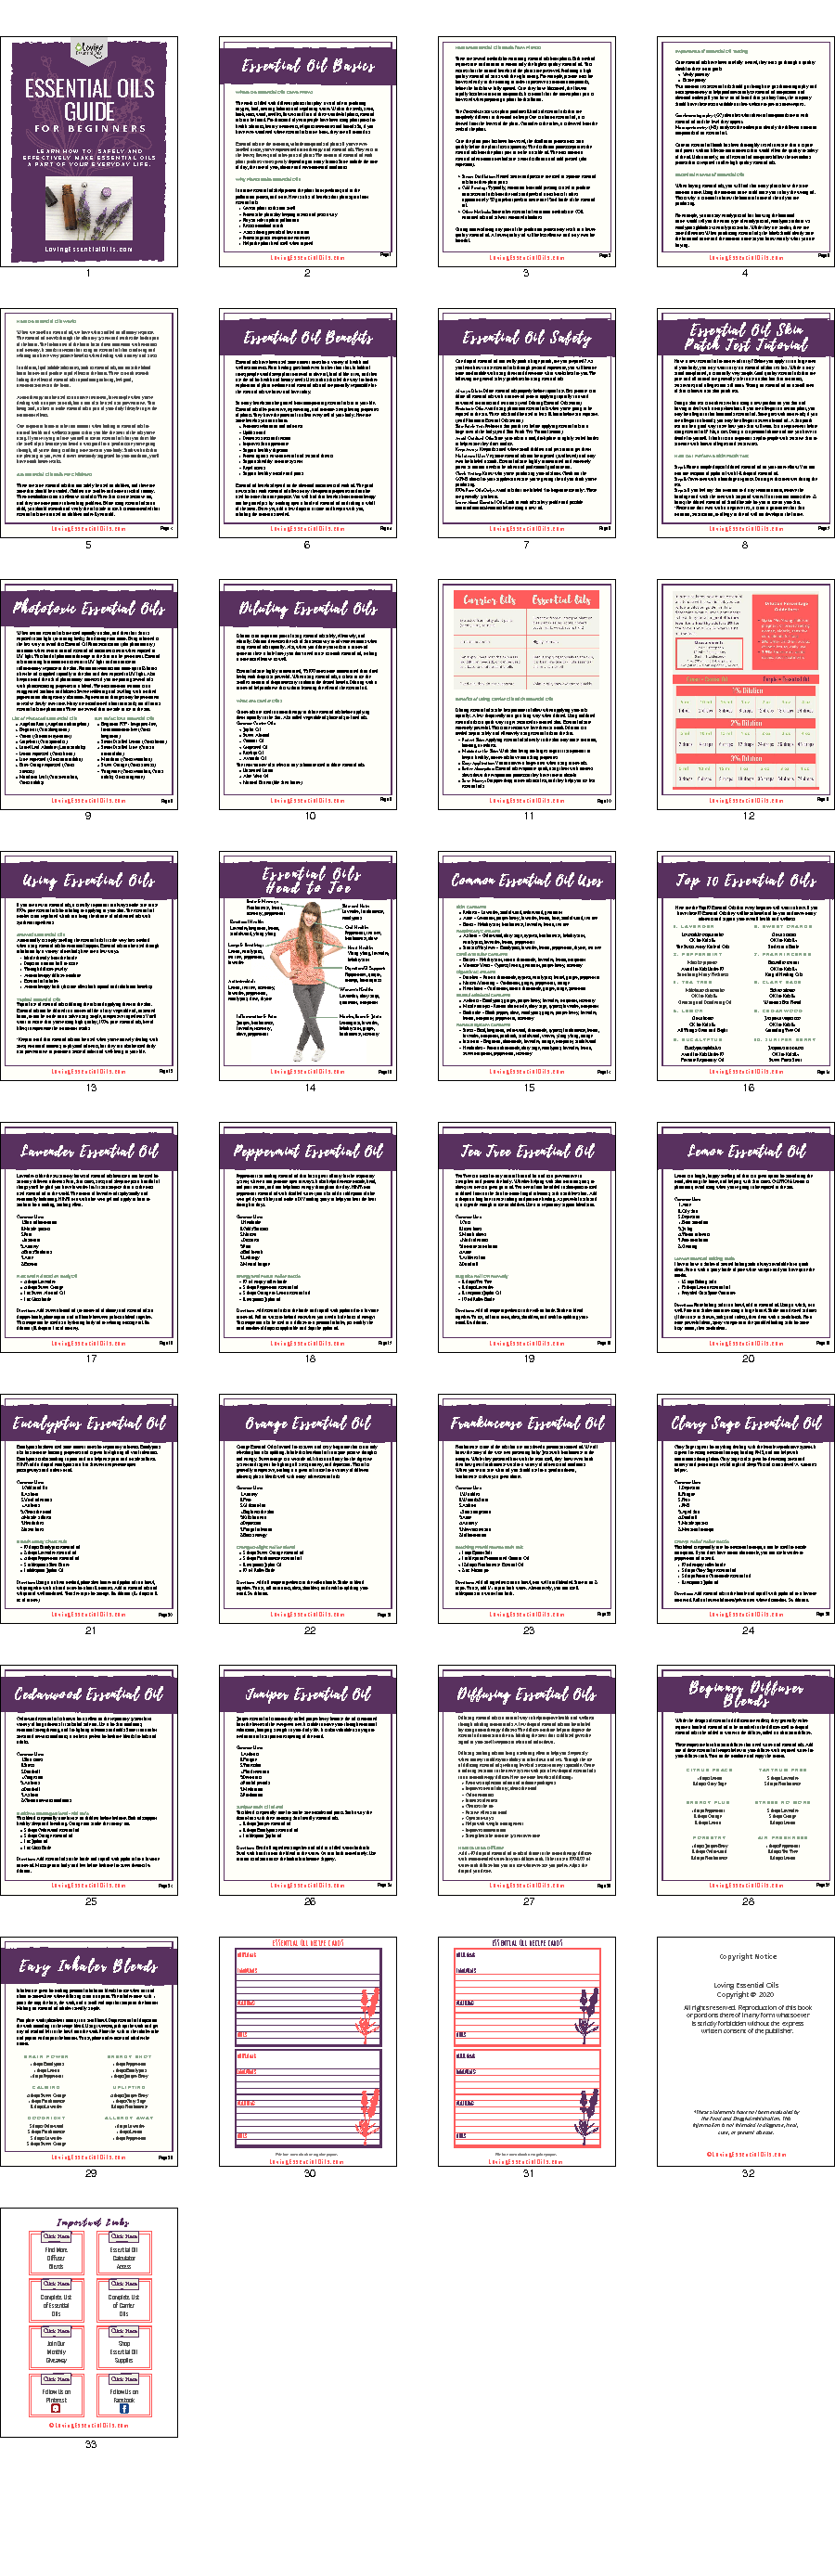 Beginner's essential oil guide pdf by loving essential oils